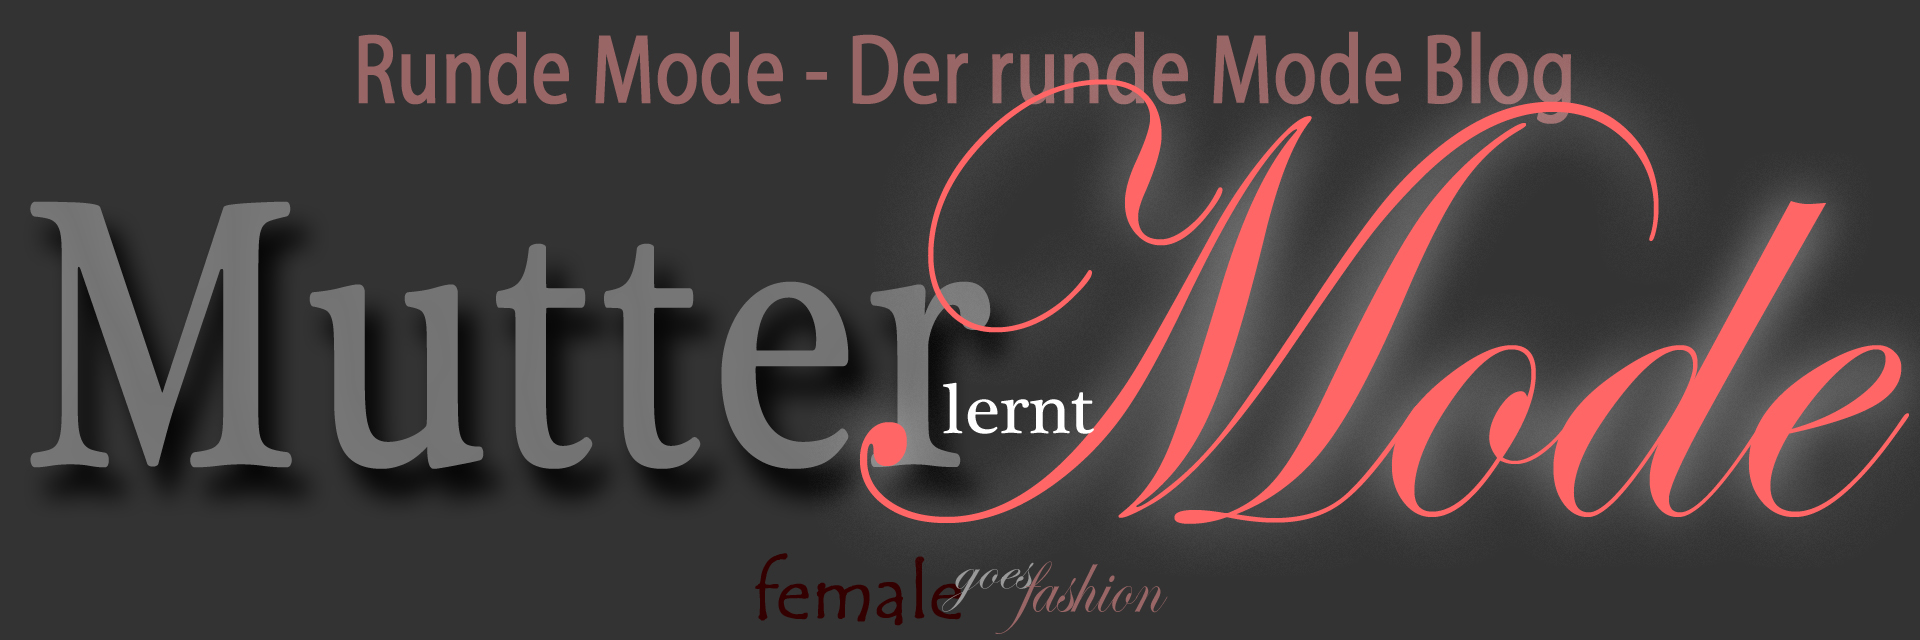 under construction – wieder online